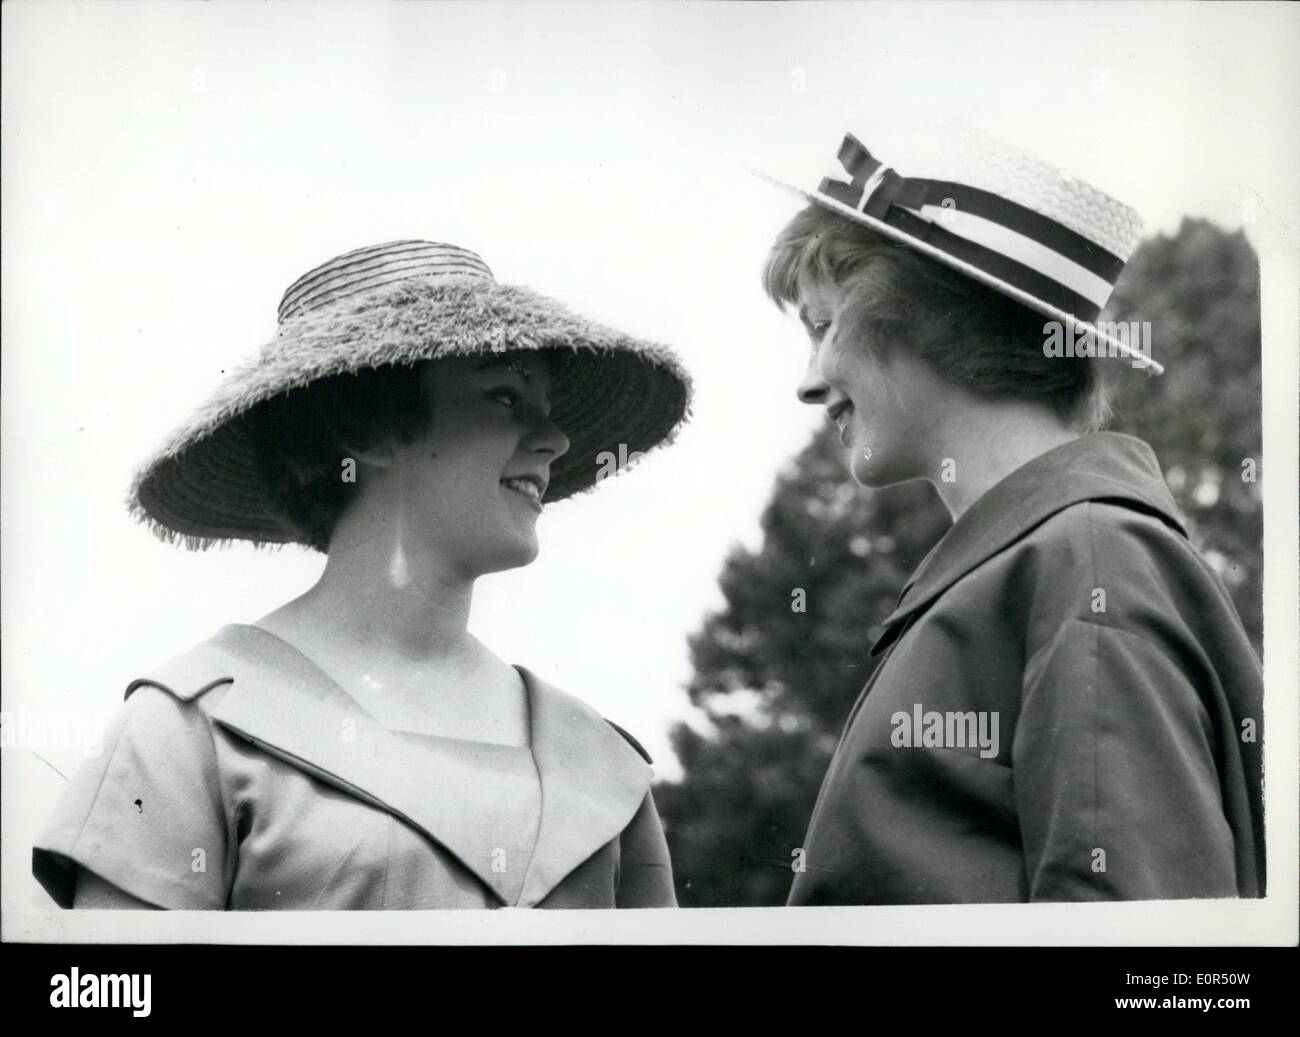 Mar. 03, 1958 - It's Boater Day at Henley. Keystone Photo Shows: Martina Foster, wearing a Royal Blue Italian straw hat, and Anne Clarke, wearing her boy friend's straw boater - at Henley today, where it appears to be a boater fashion day for the ladies - on the second day of the famous regatta. - Stock Image